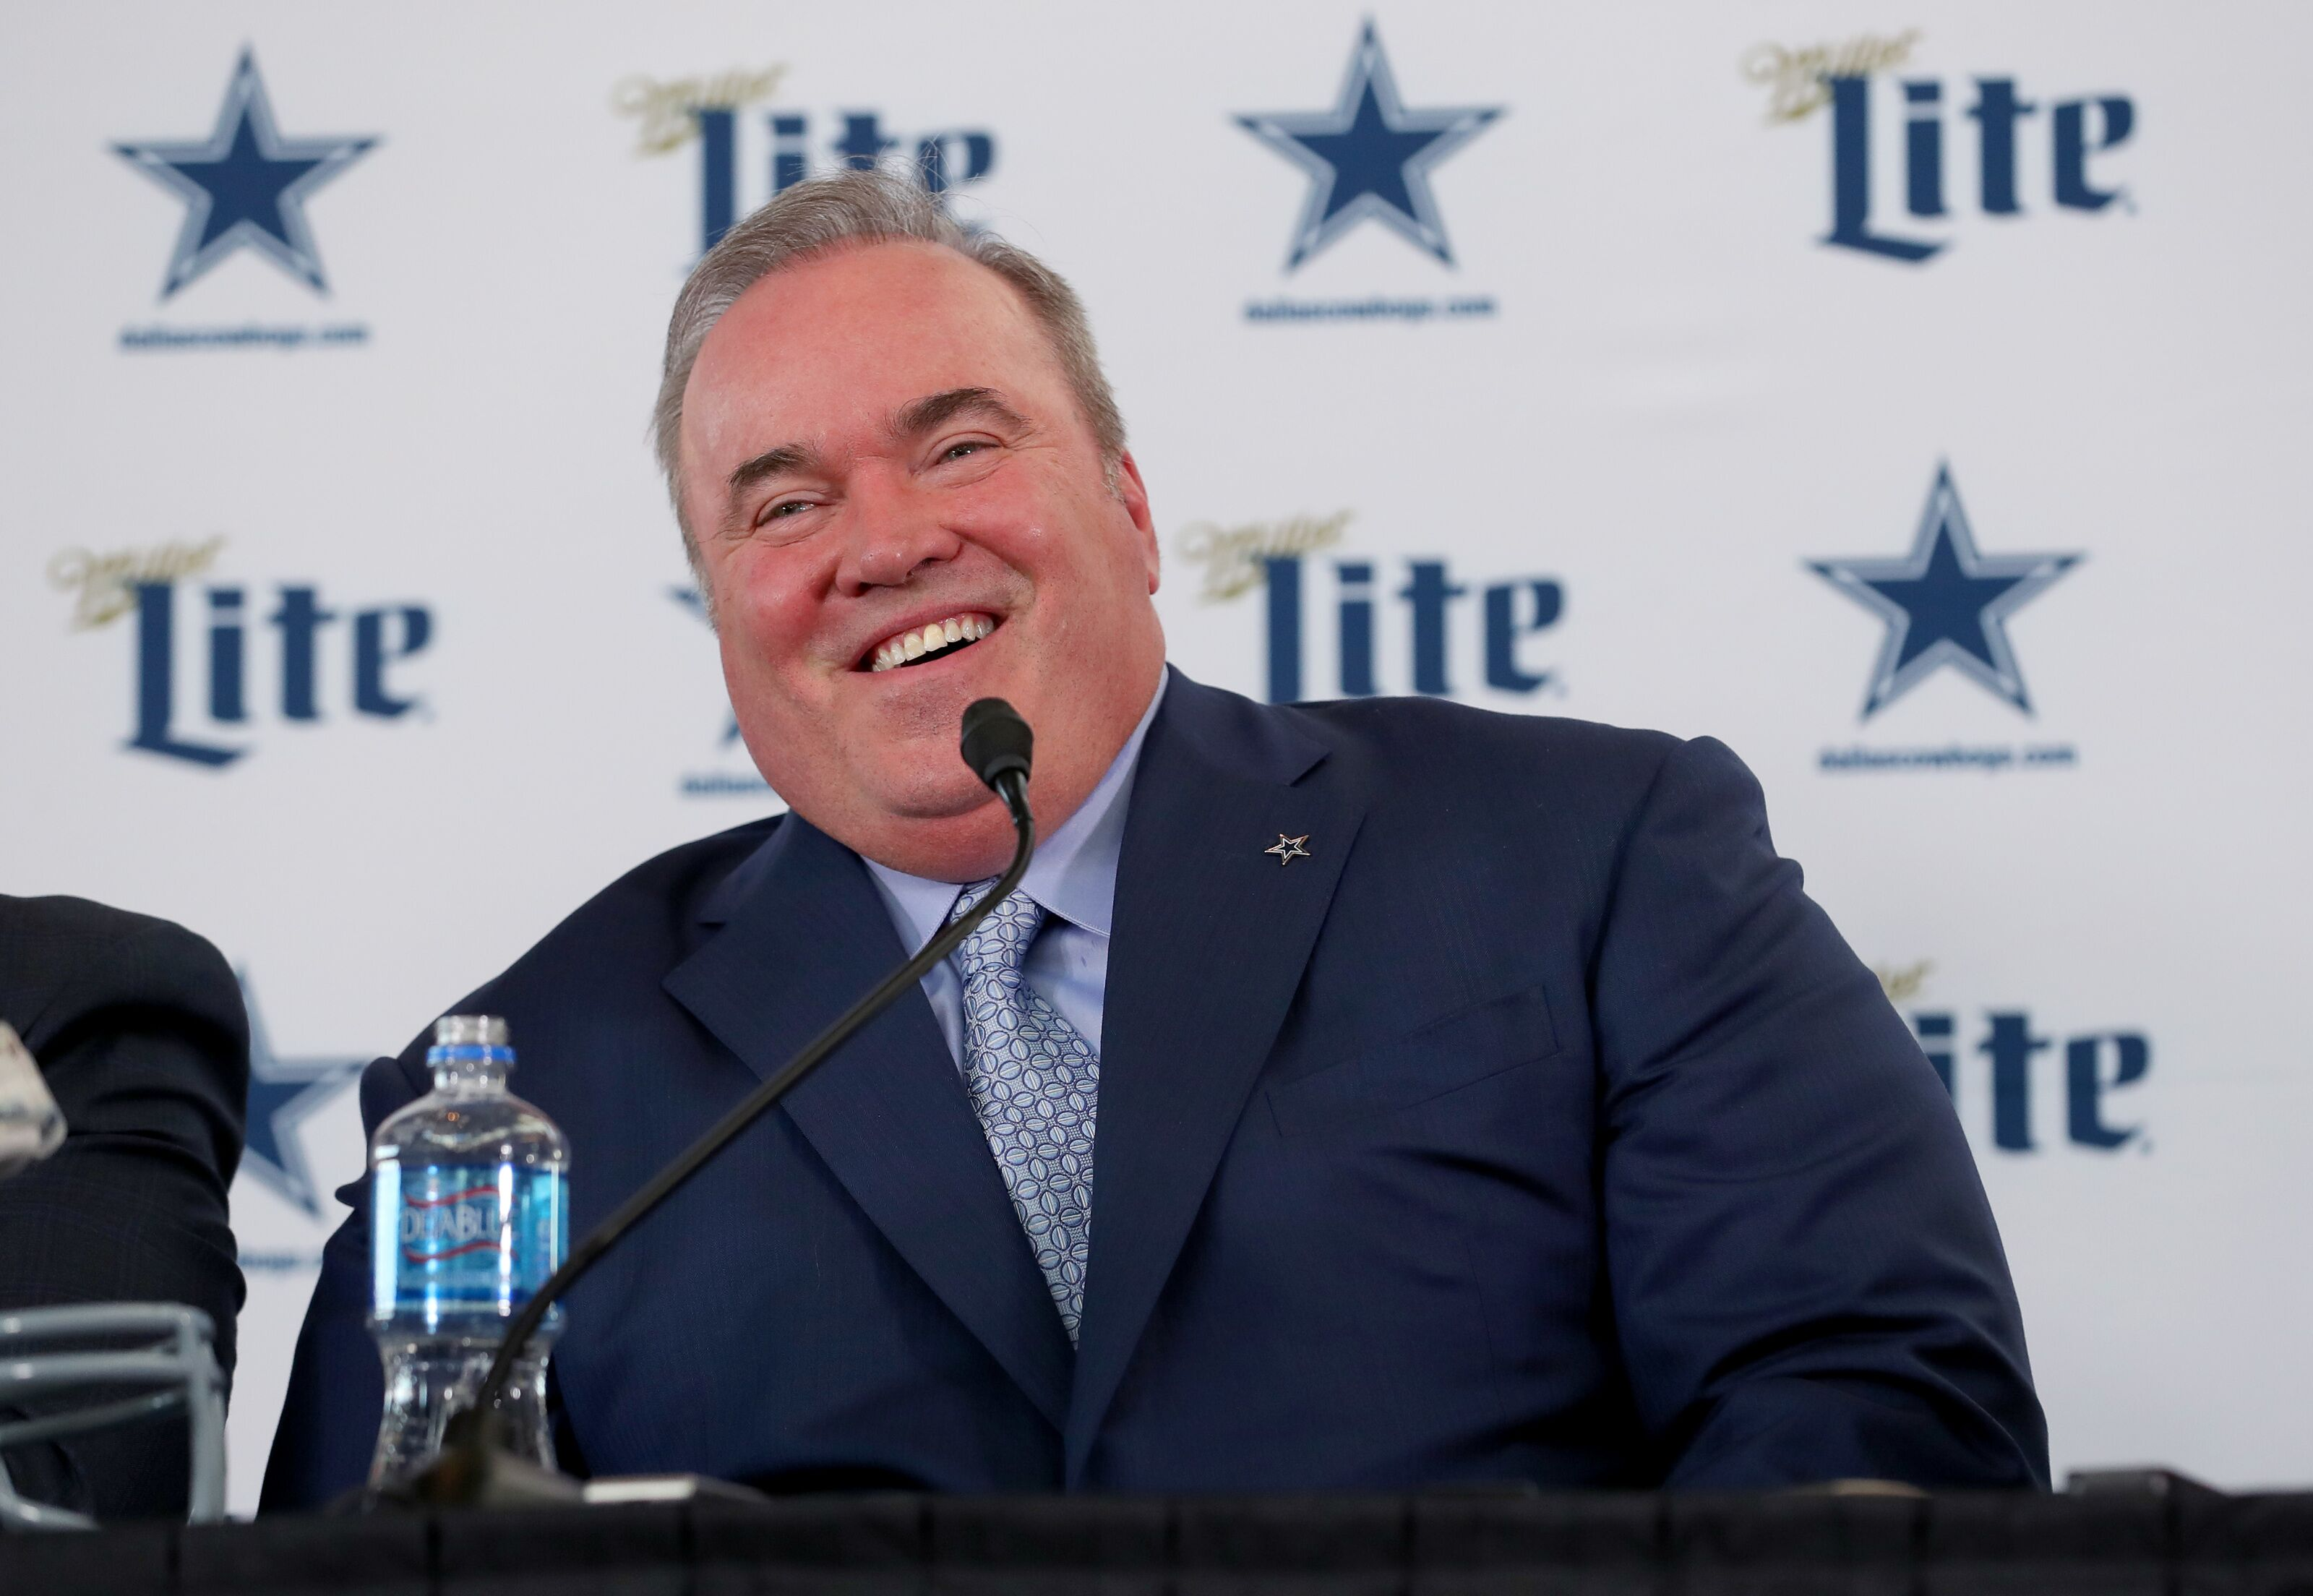 Michael Irvin: Mike McCarthy was the hire the Cowboys needed to make